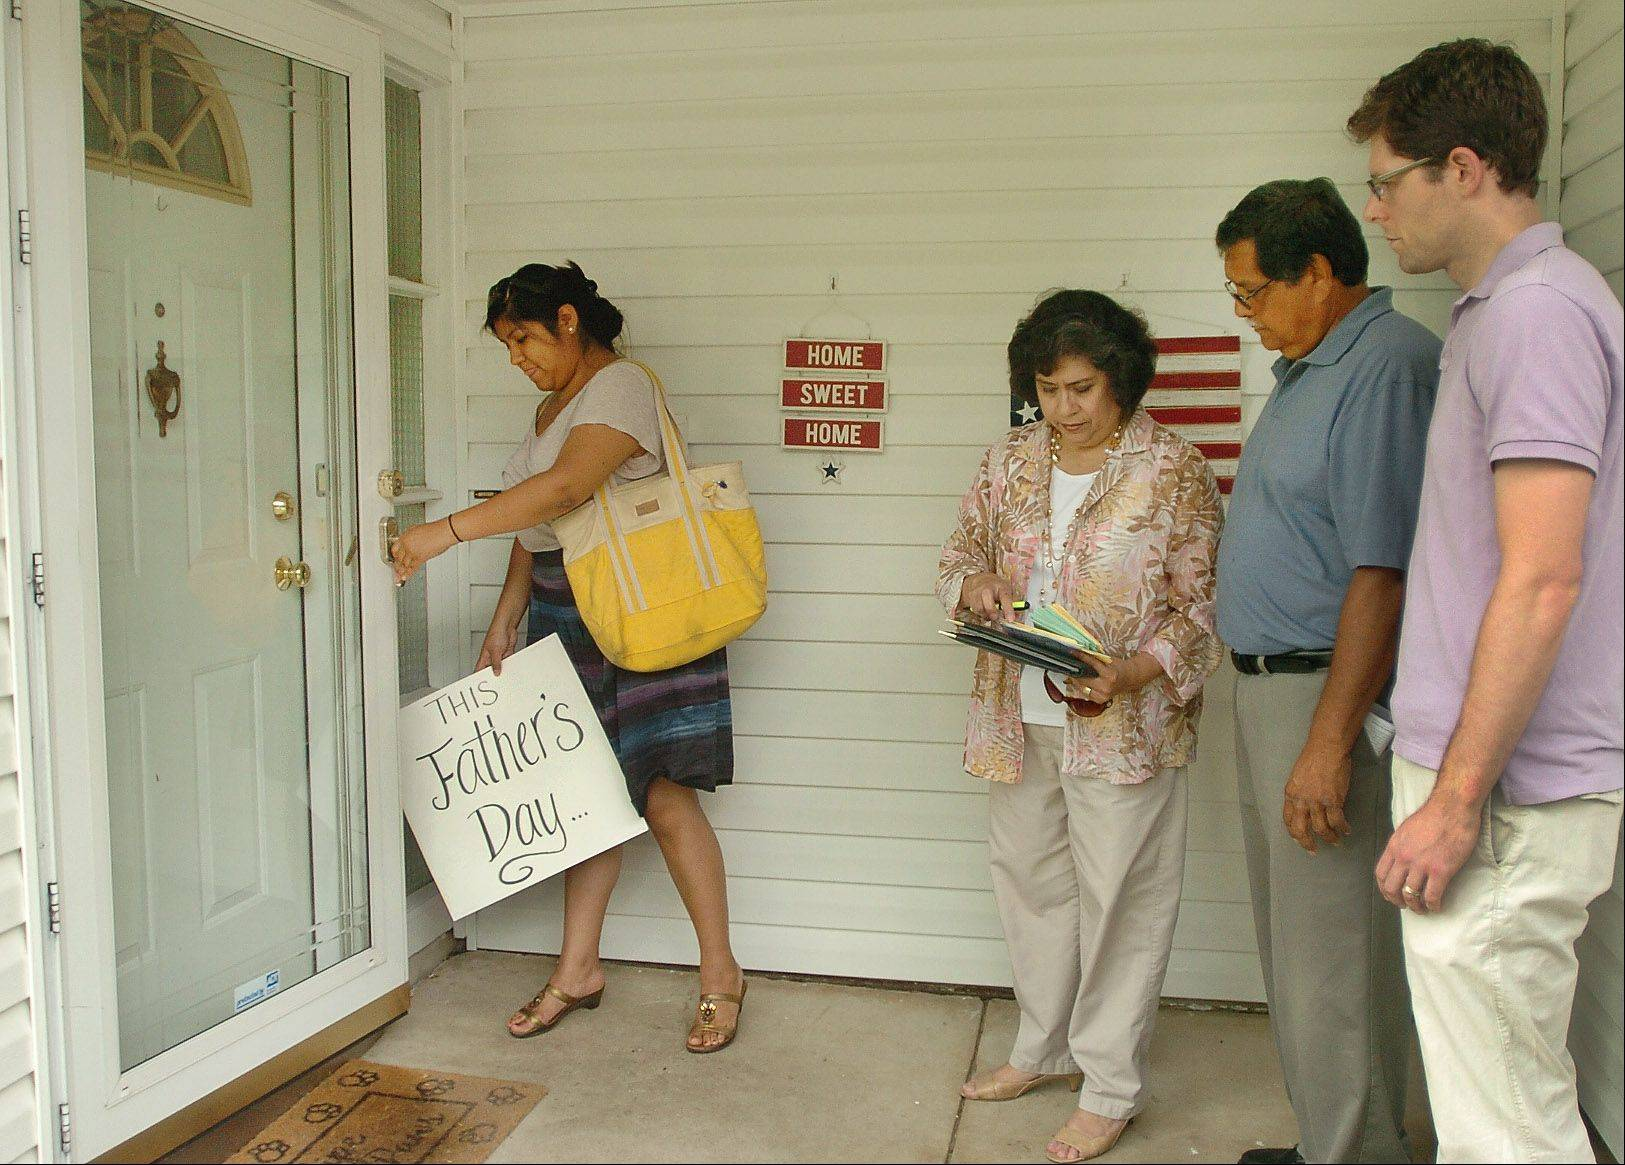 Maria Salazar places a sign in the doorway of state Rep. Fred Crespo's home as members of the Illinois Coalition for Immigrant and Refugee Rights deliver Father's Day cards and letters to Crespo's home Saturday in protest of his policies on immigration.